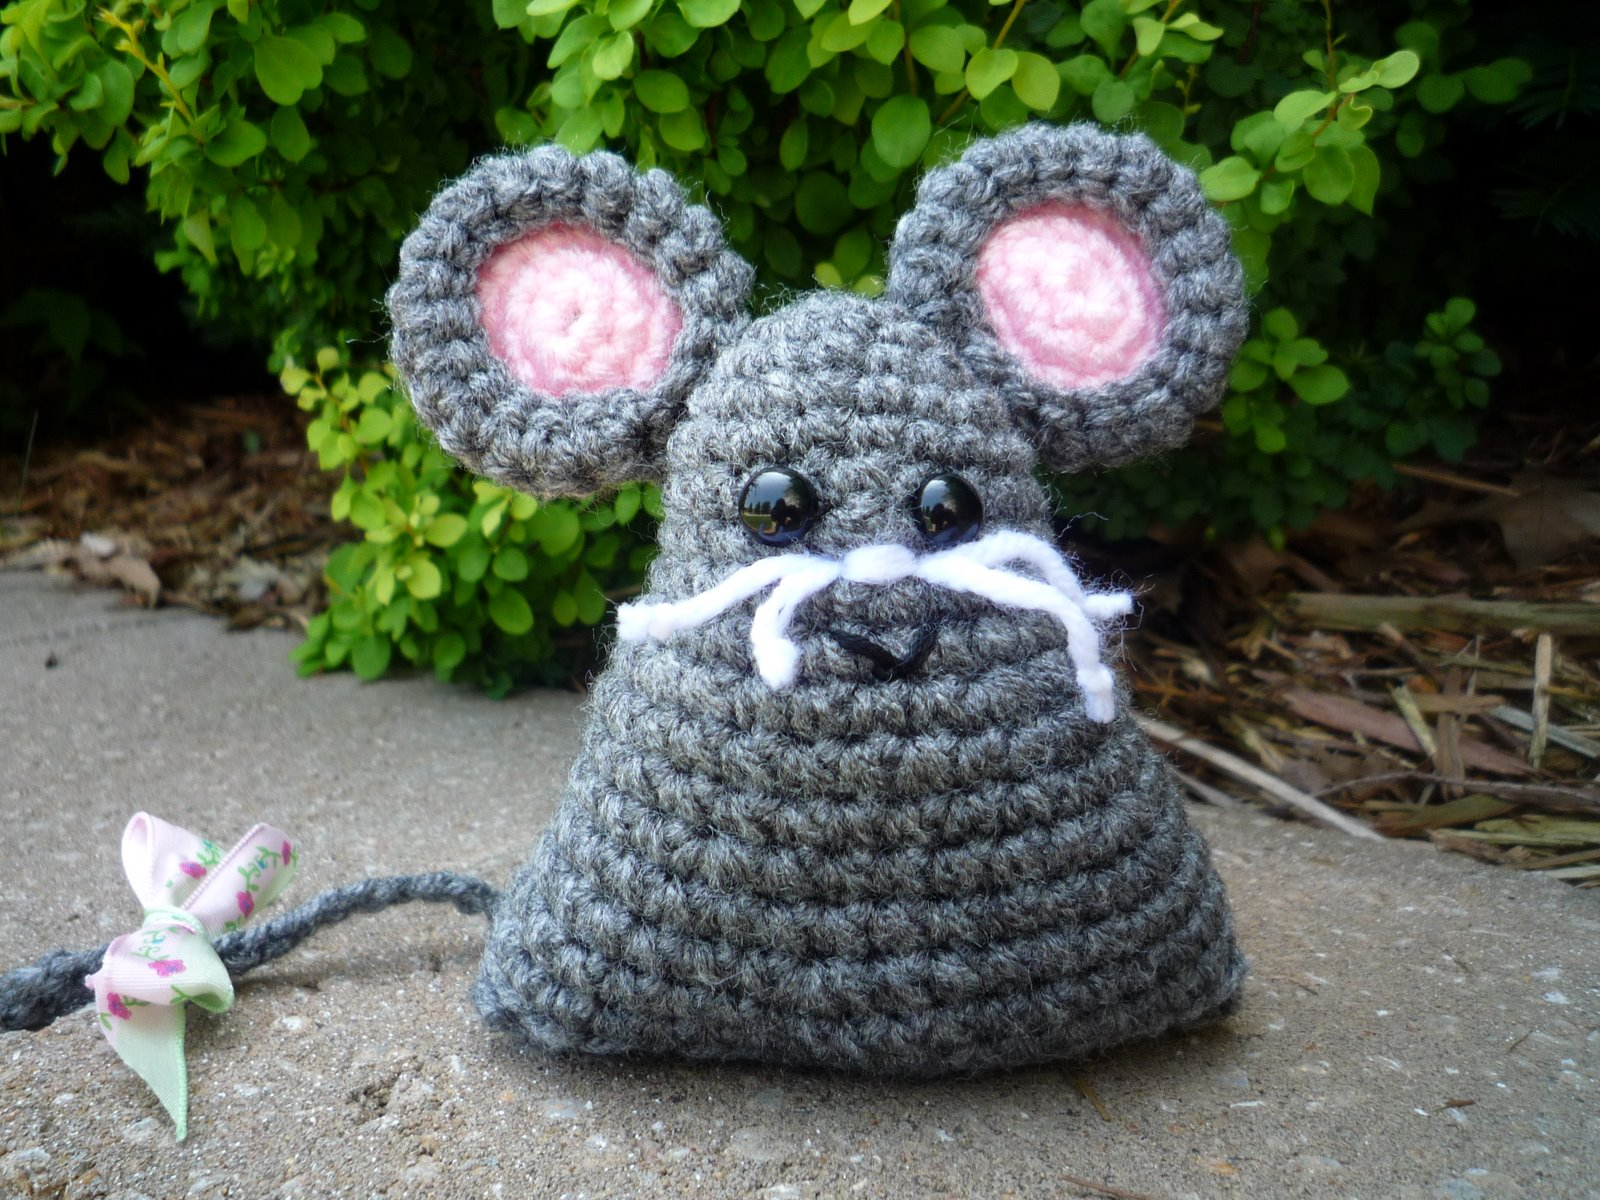 Amigurumi Patterns Free Mouse : 2000 Free Amigurumi Patterns